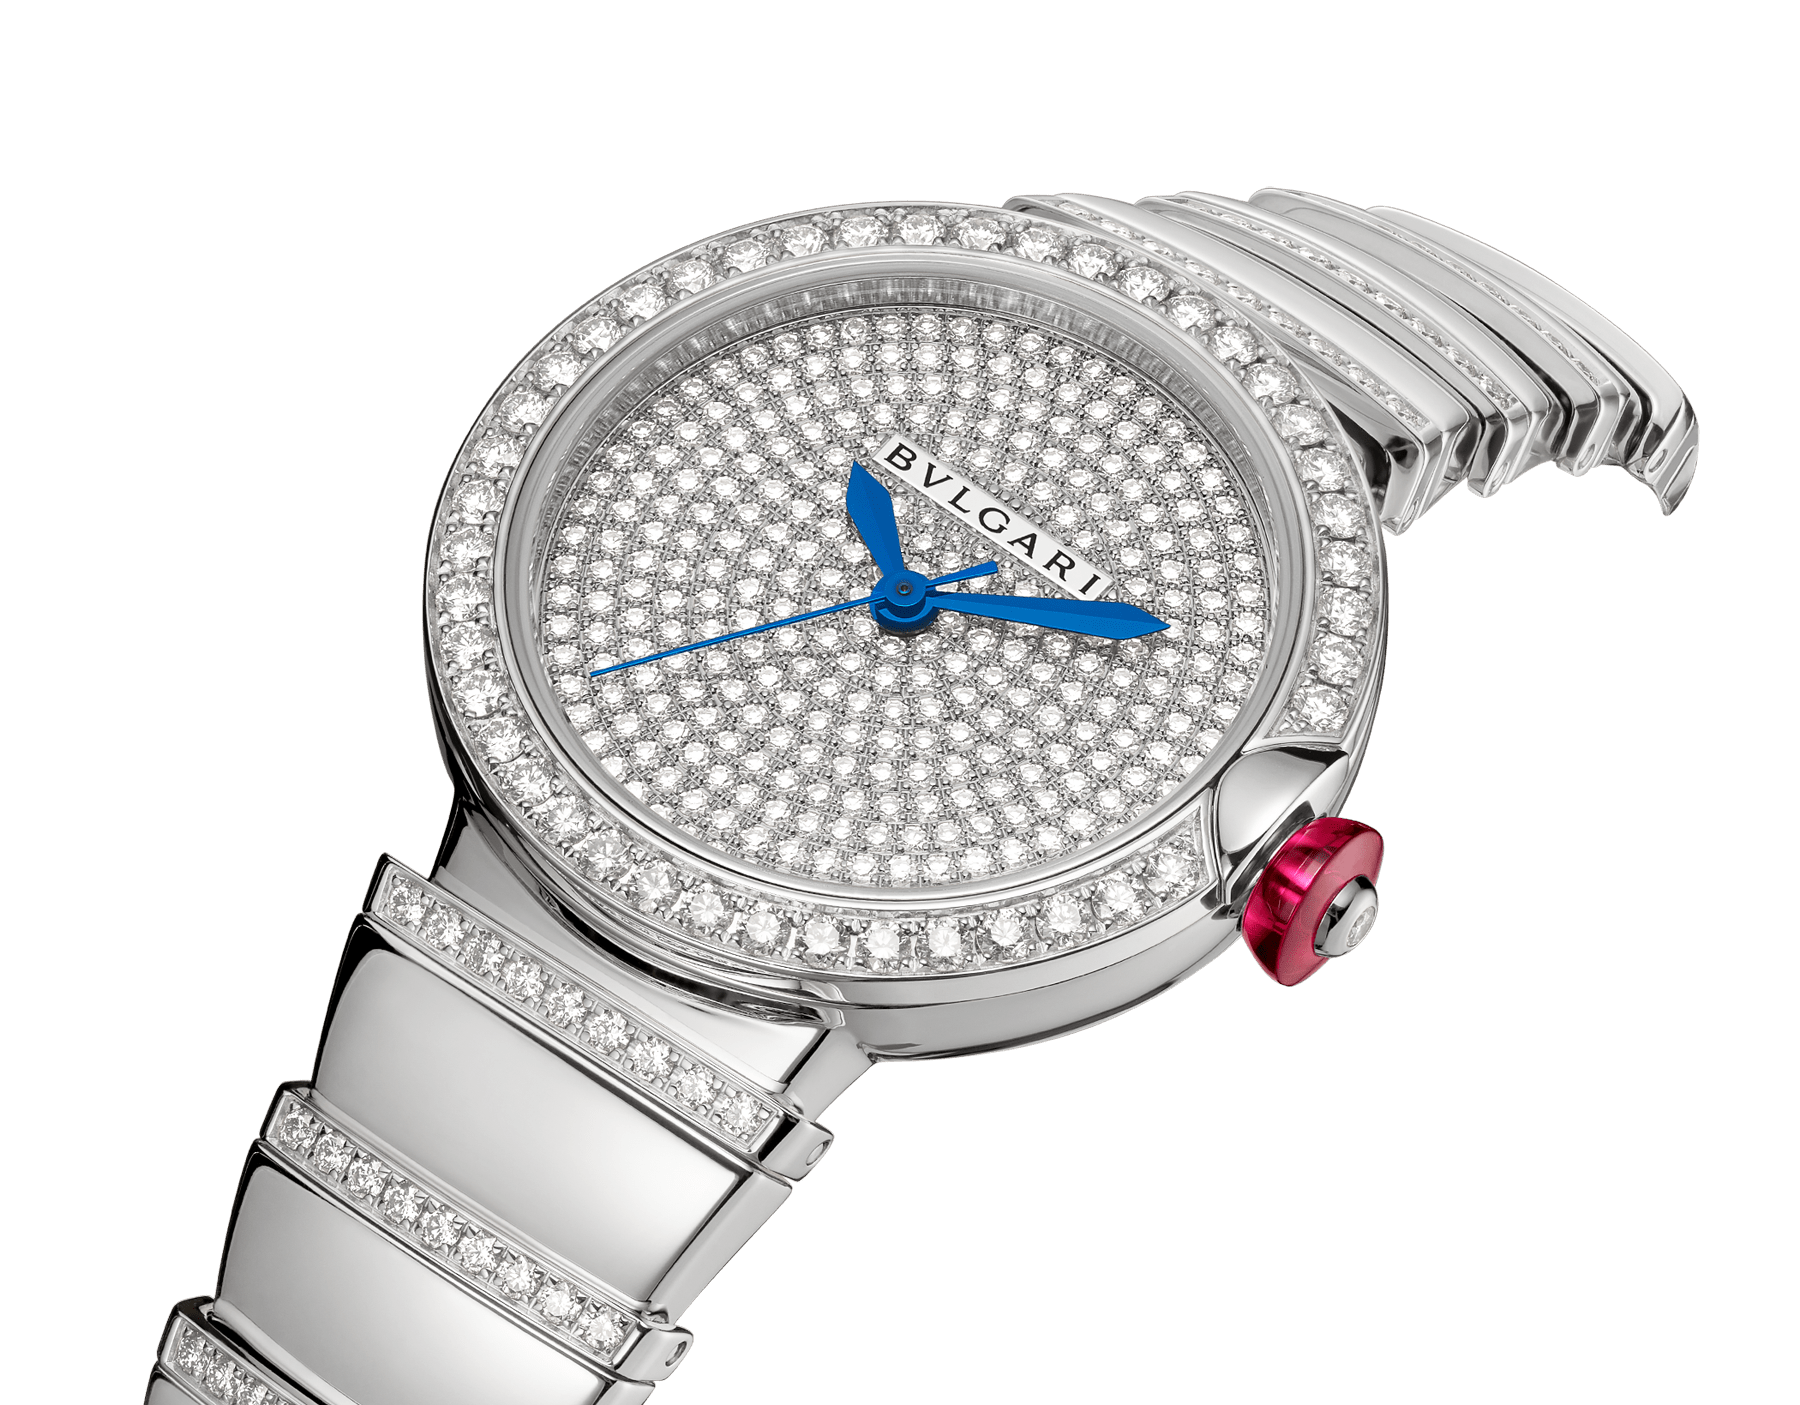 LVCEA watch in 18 kt white gold and brilliant-cut diamond case and bracelet, with full pavé diamond dial. 102380 image 2